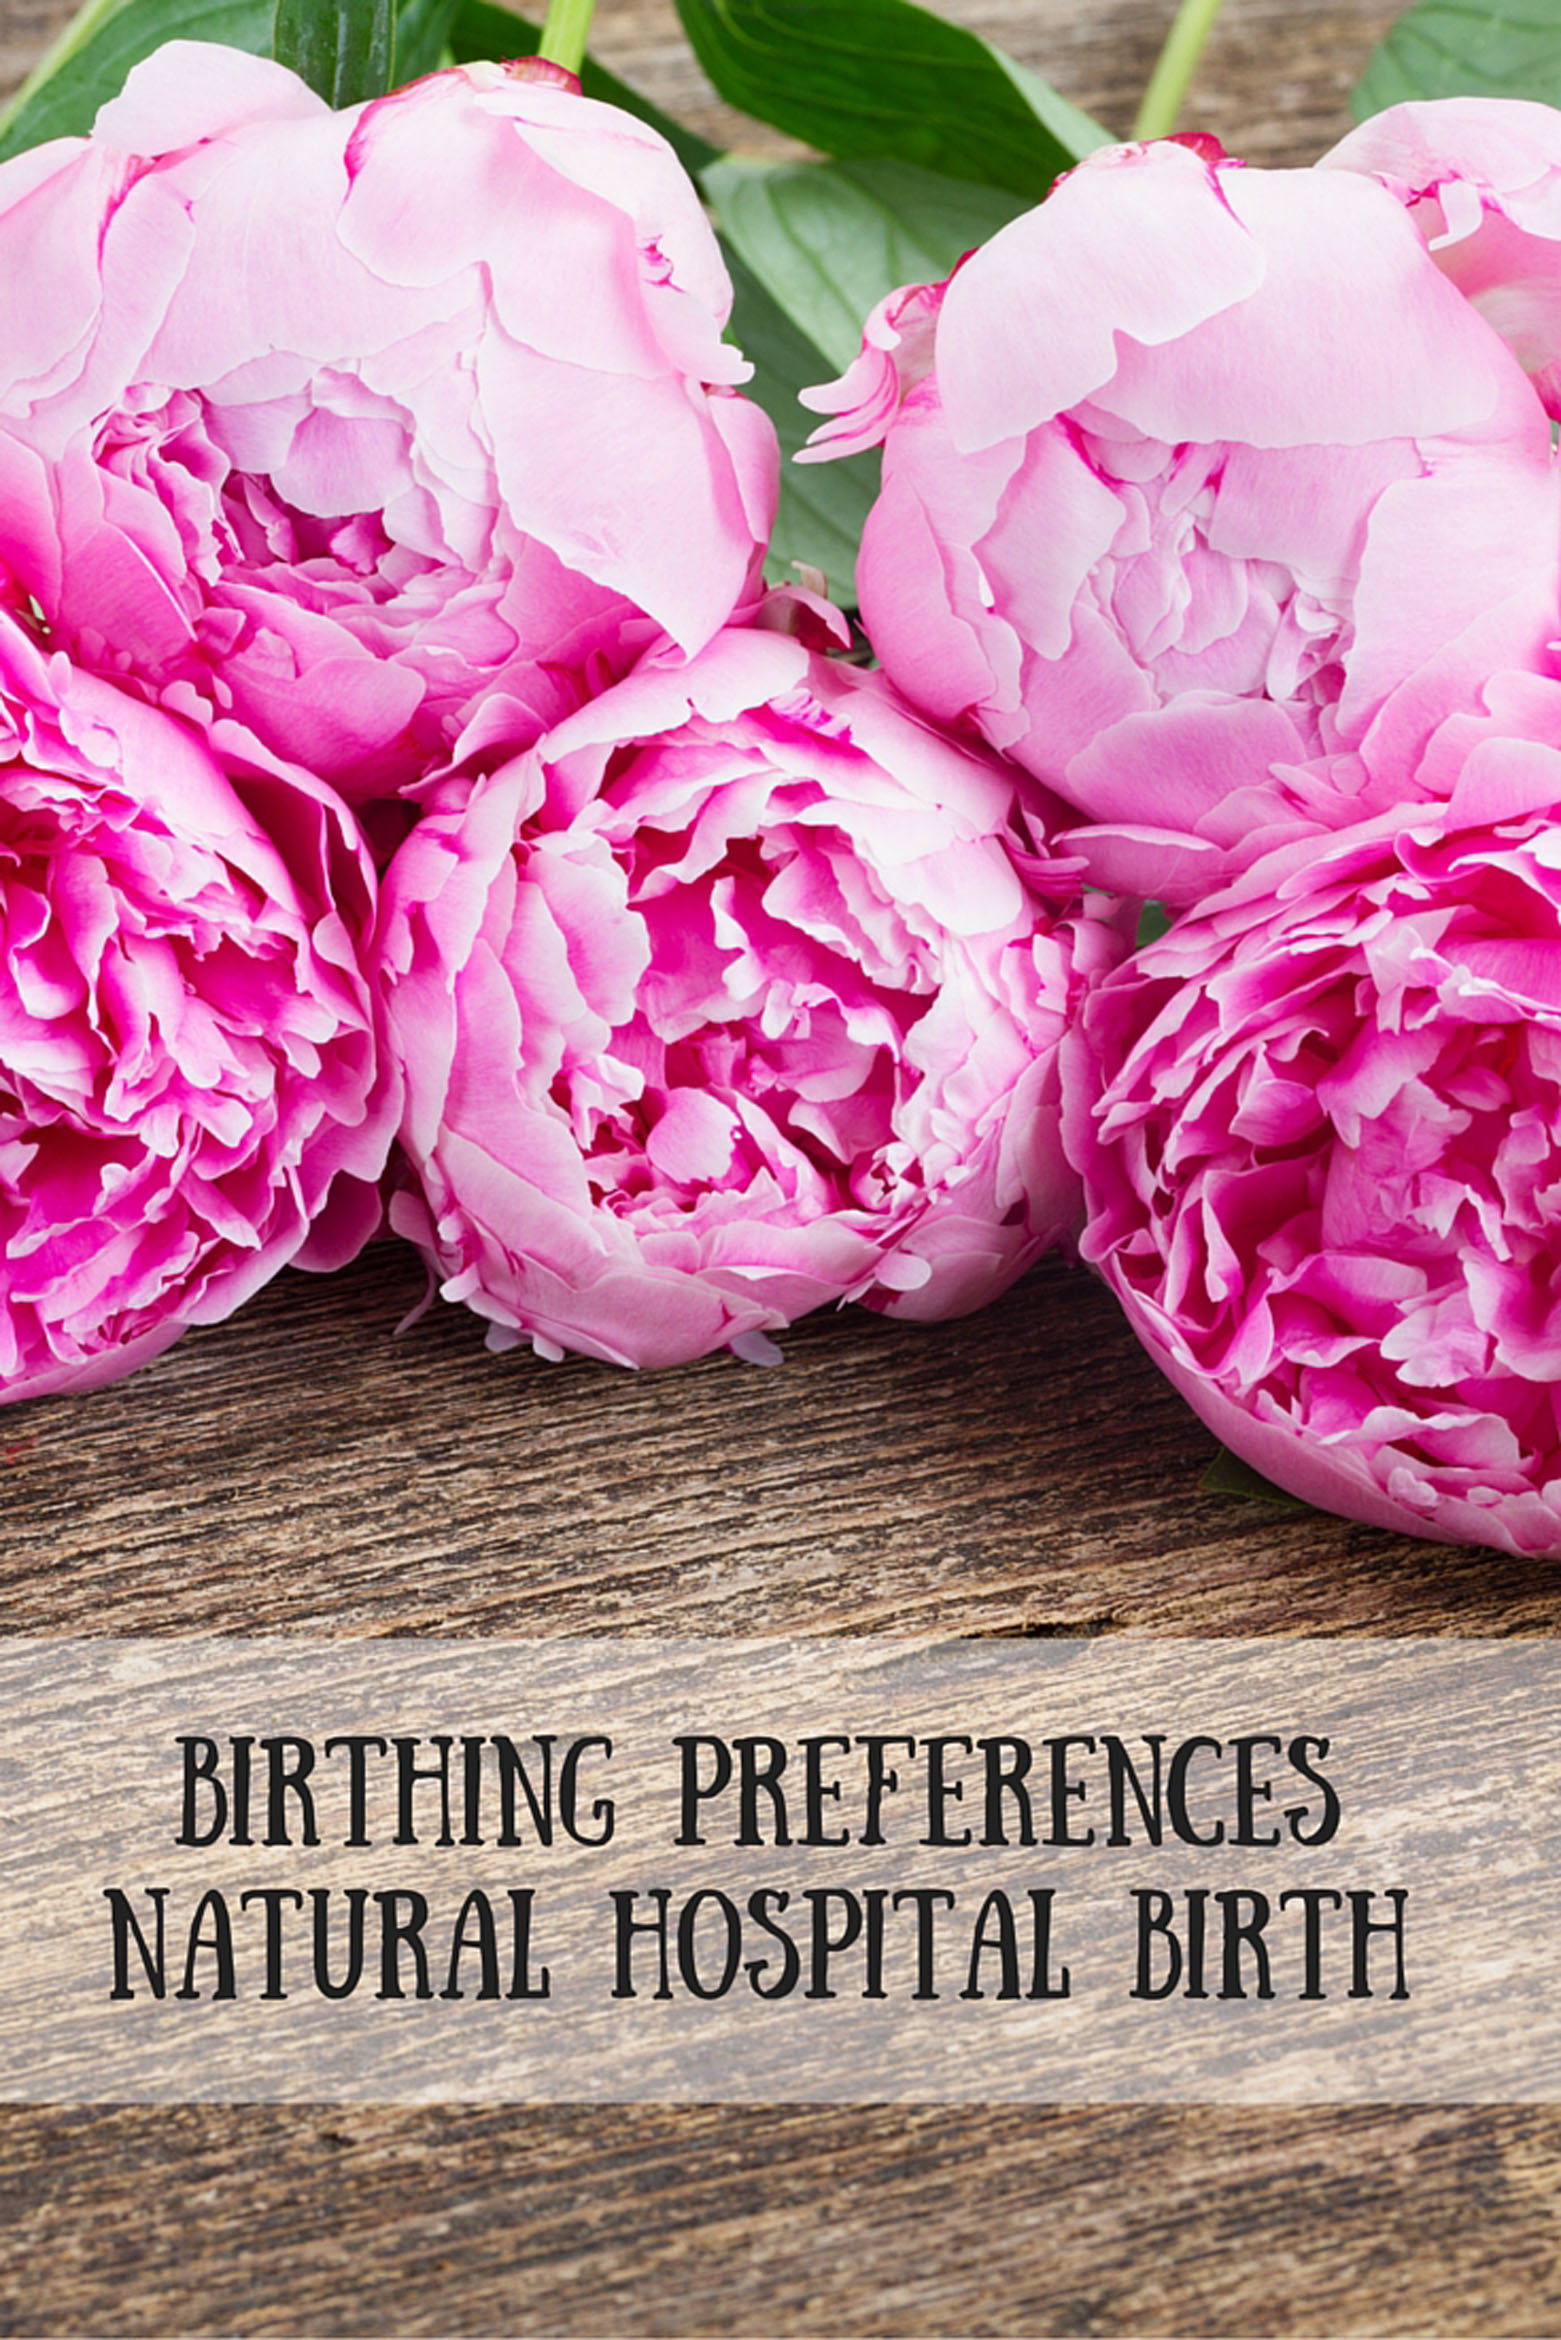 Birthing Preferences Natural Hospital